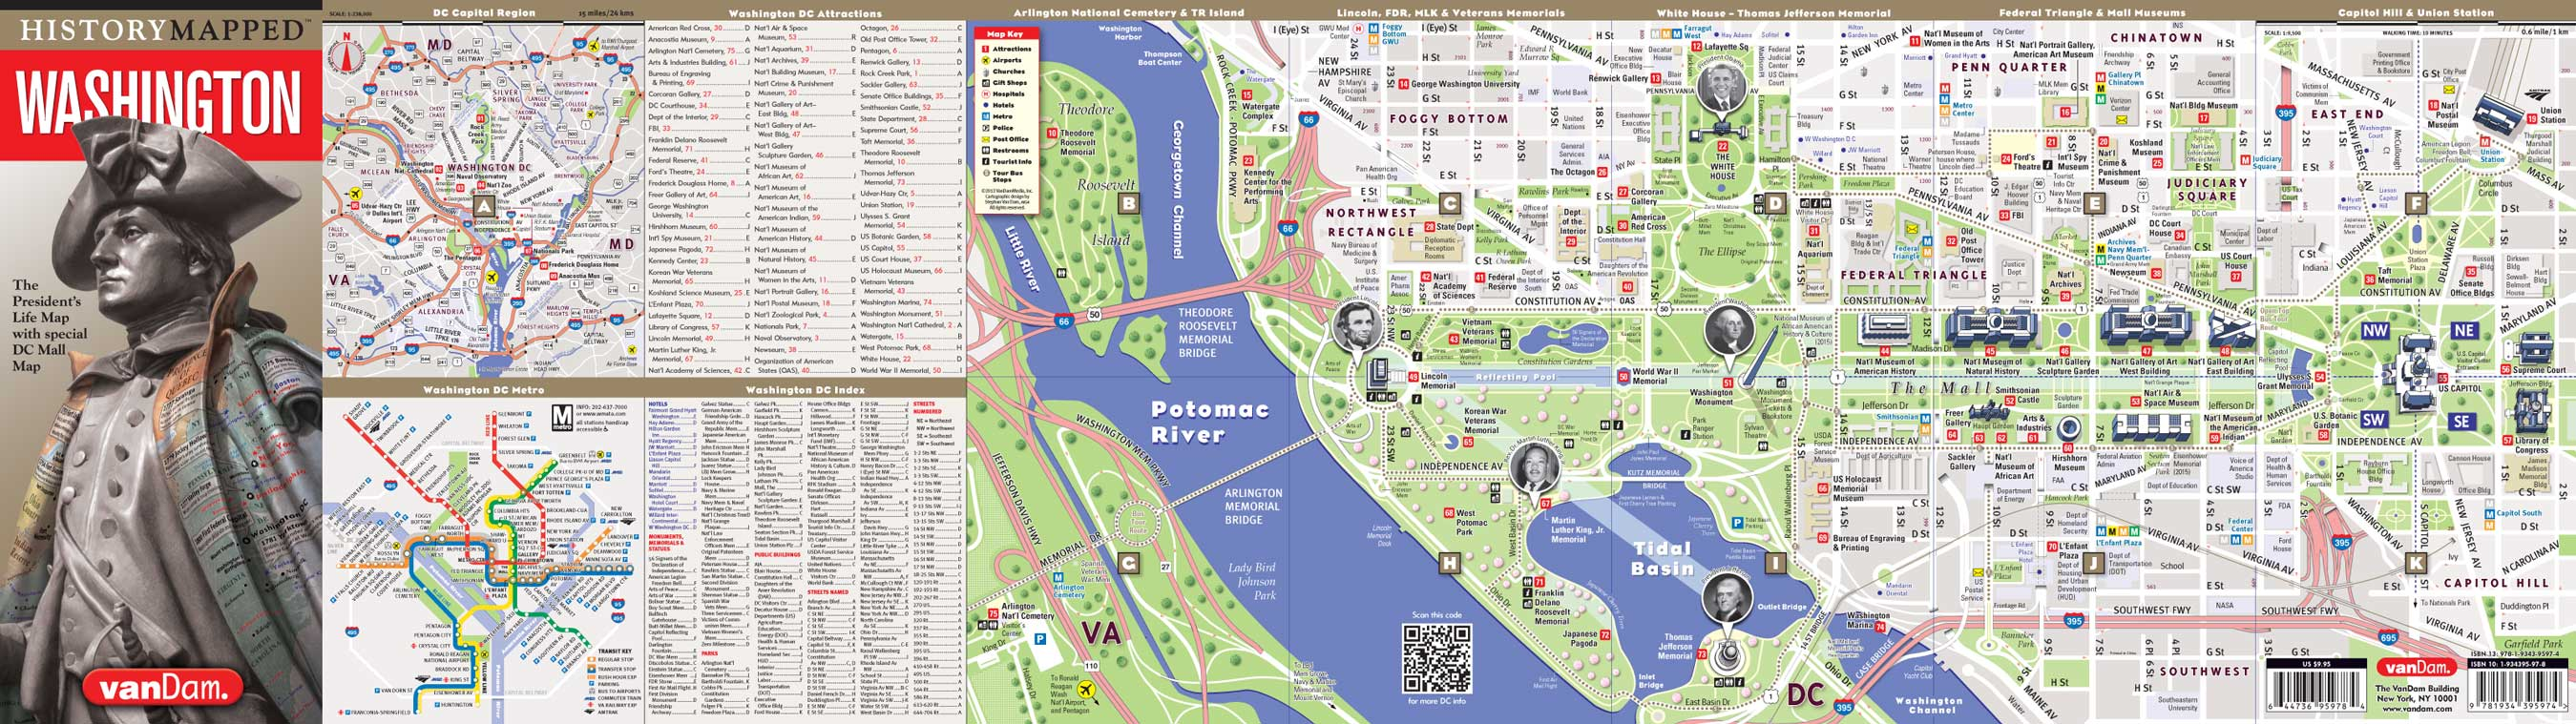 Washington Presidential Map Capital Edition by VanDam History